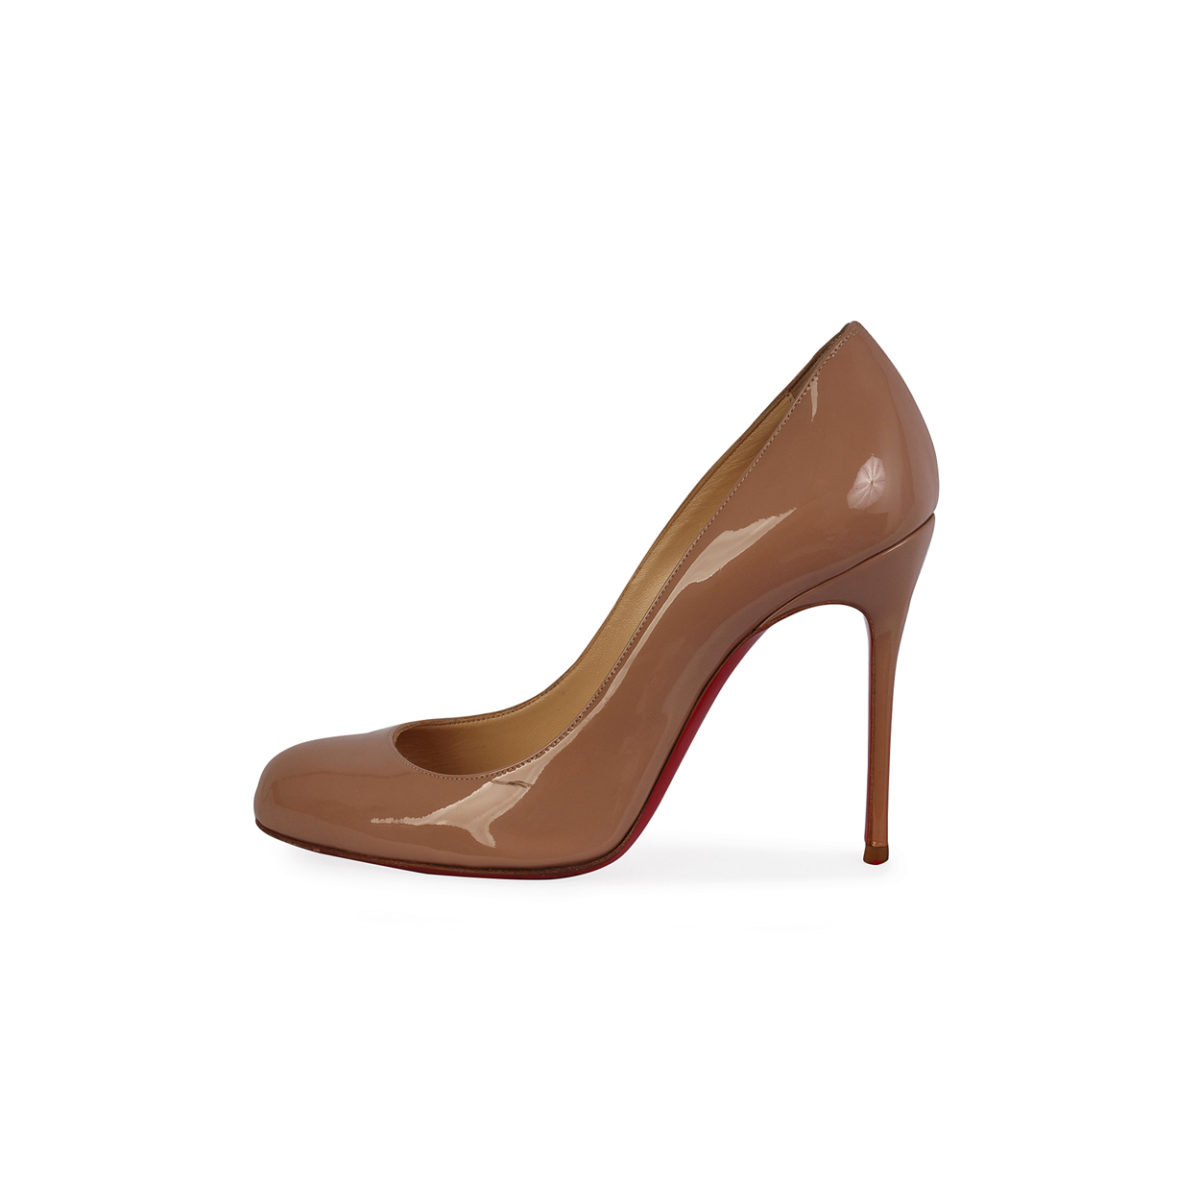 free shipping ed68f 889bf CHRISTIAN LOUBOUTIN Patent Fifi 100mm Pumps Nude - S: 36 (3.5)